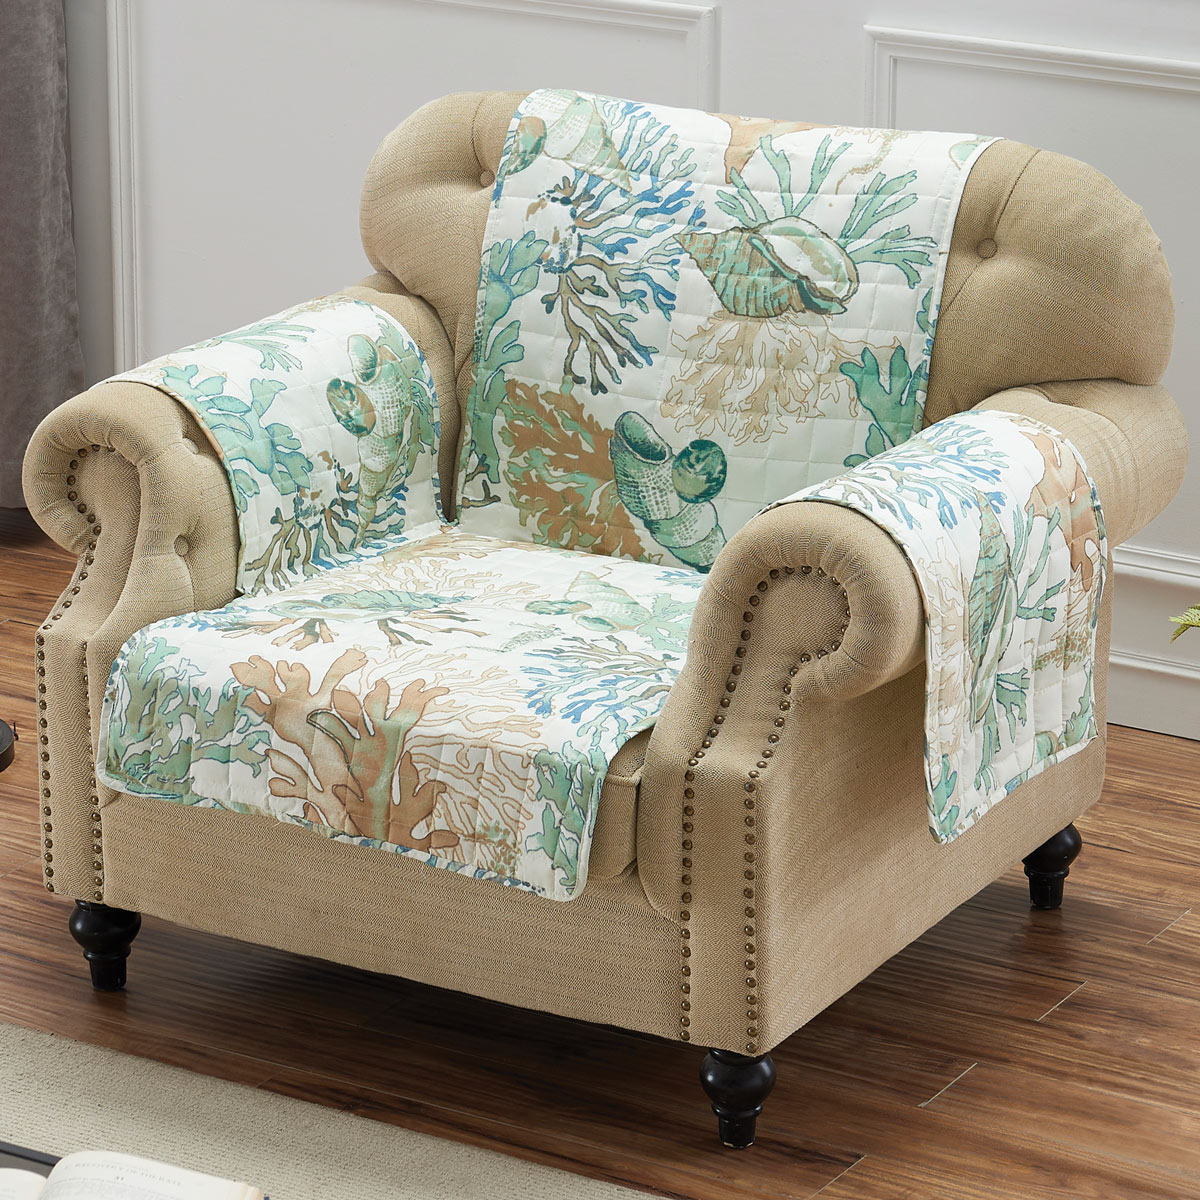 Coral Reef and Shells Chair Slipcover Protector